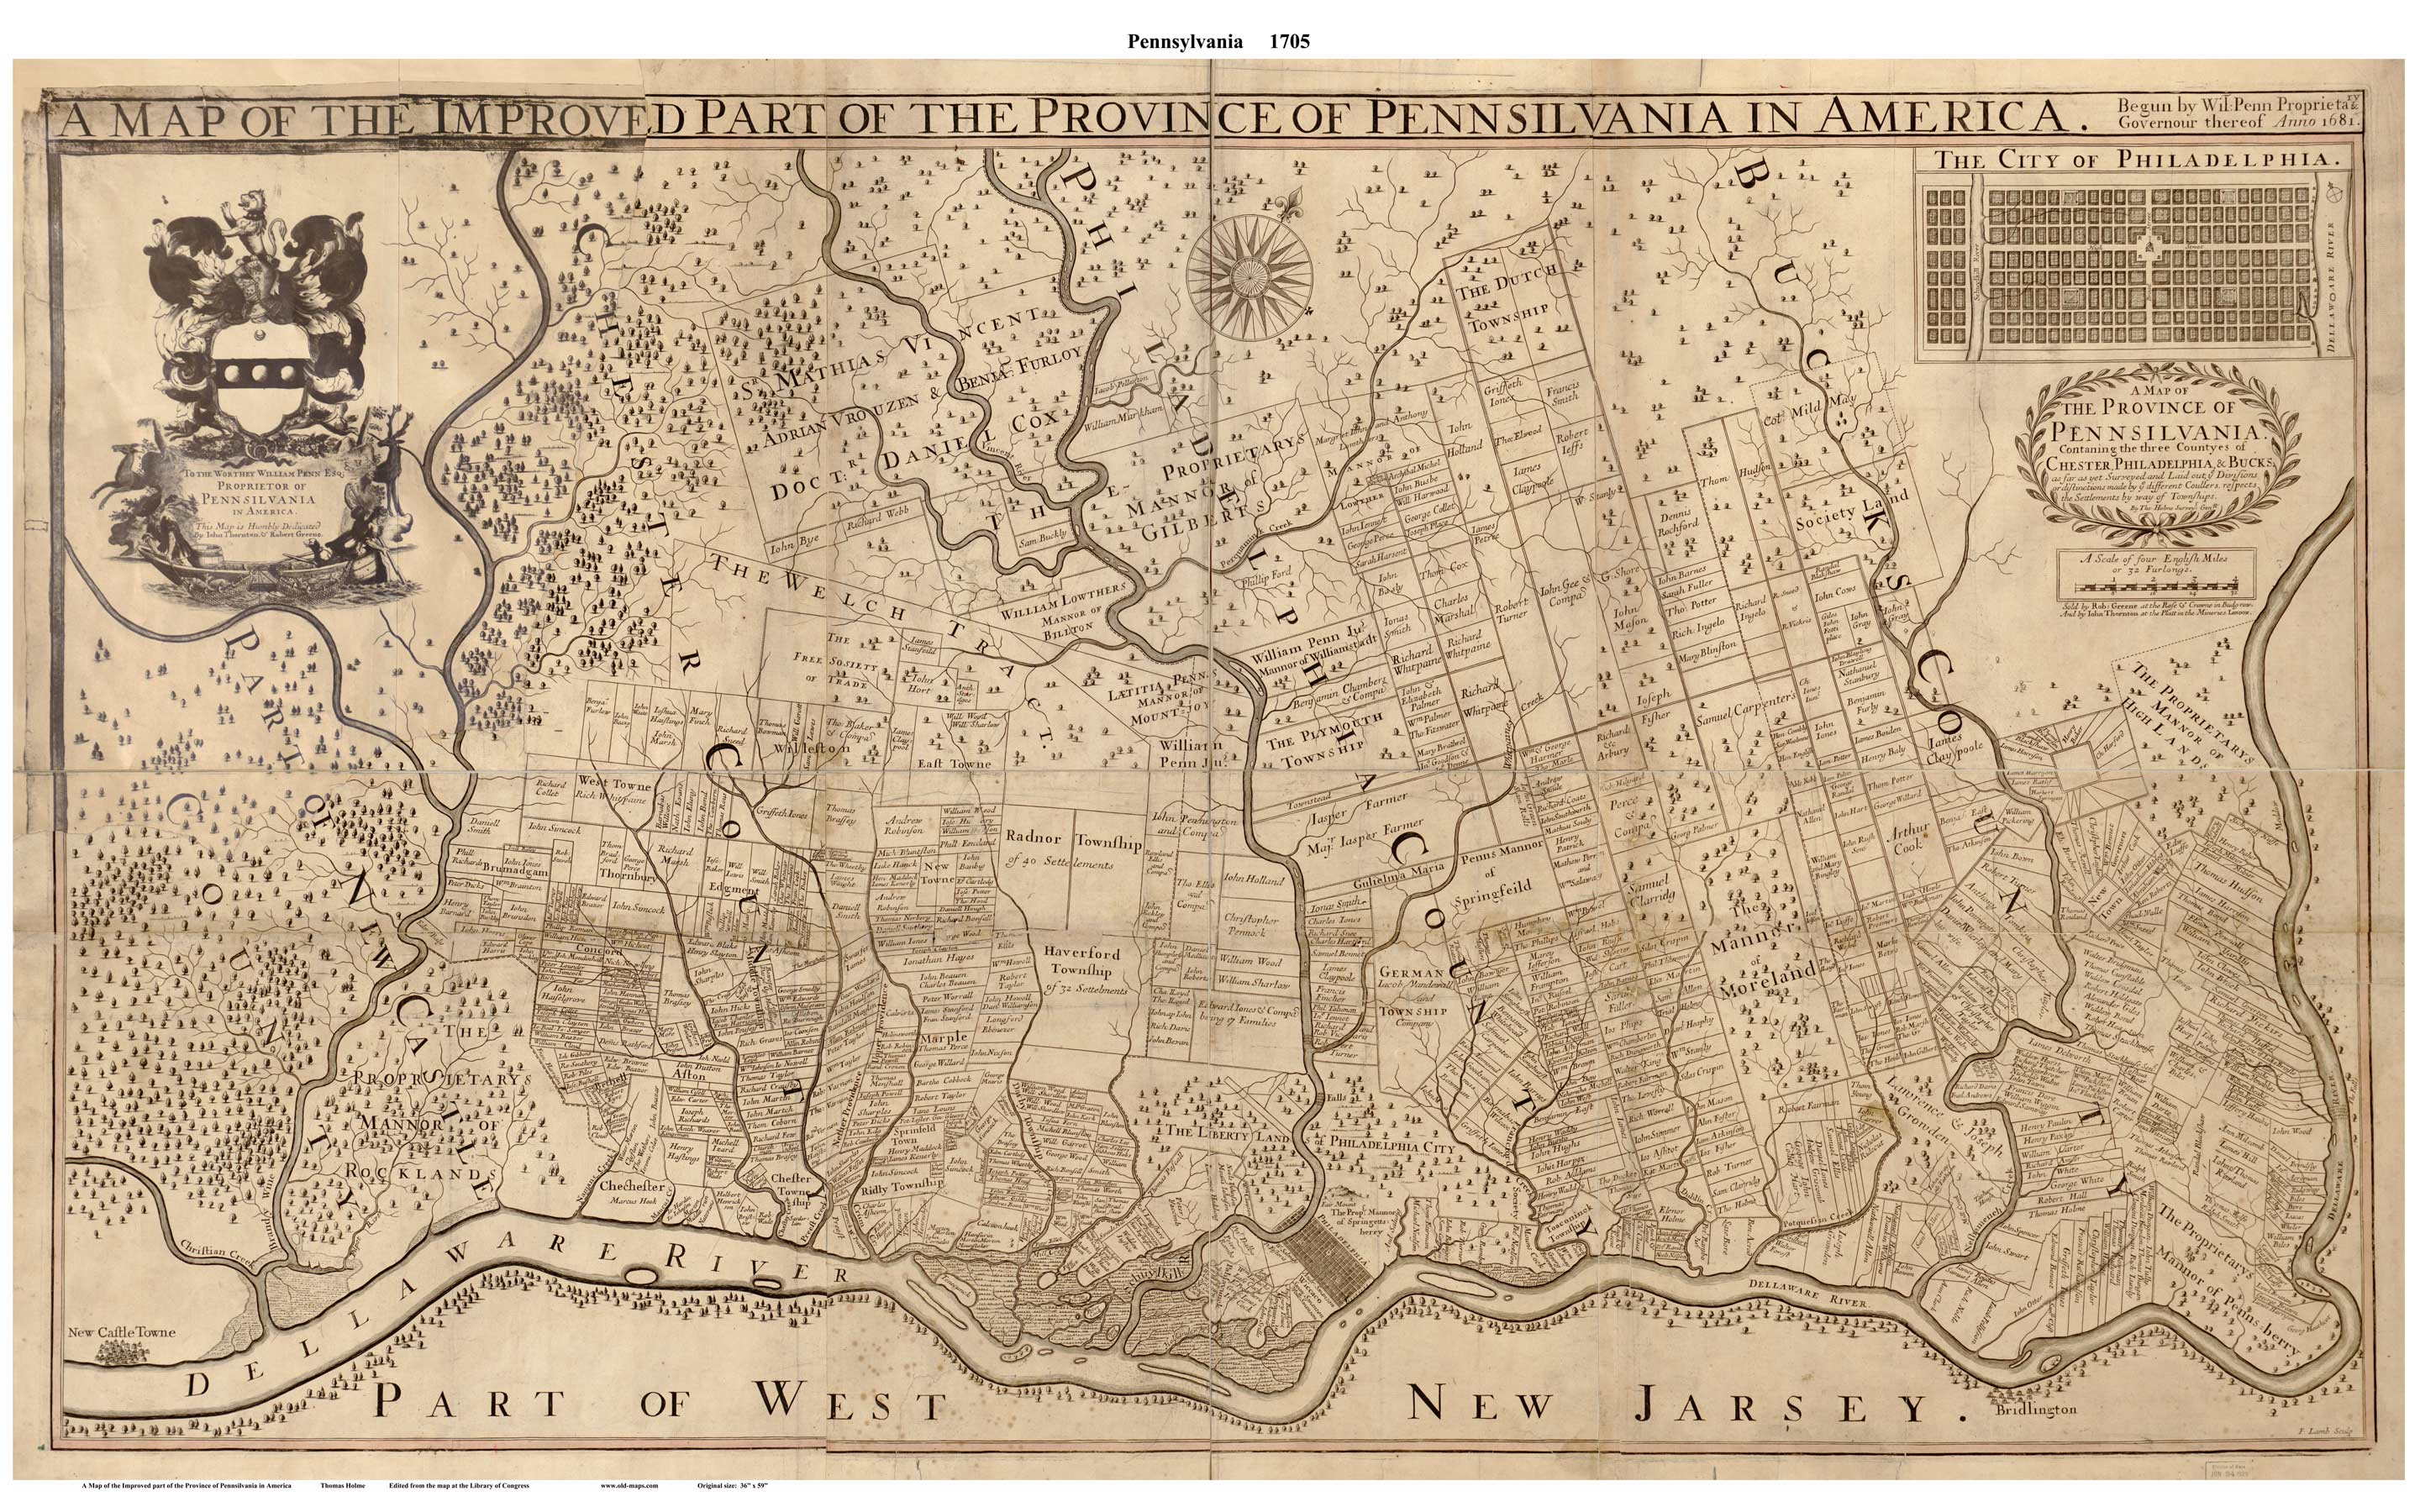 Old Maps of Philadelphia, PA Map Chestnut Hill Pa on franklin pa map, norristown pa map, westfield pa map, philadelphia map, charlestown pa map, salisbury pa map, state college pa map, watertown pa map, pottstown pa map, rittenhouse square pa map, fox chase pa map, chester pa map, manayunk pa map, york pa map, boston pa map, pennsylvania hospital pa map, mt. airy pa map, exton pa map, willow grove pa map, schuylkill river pa map,